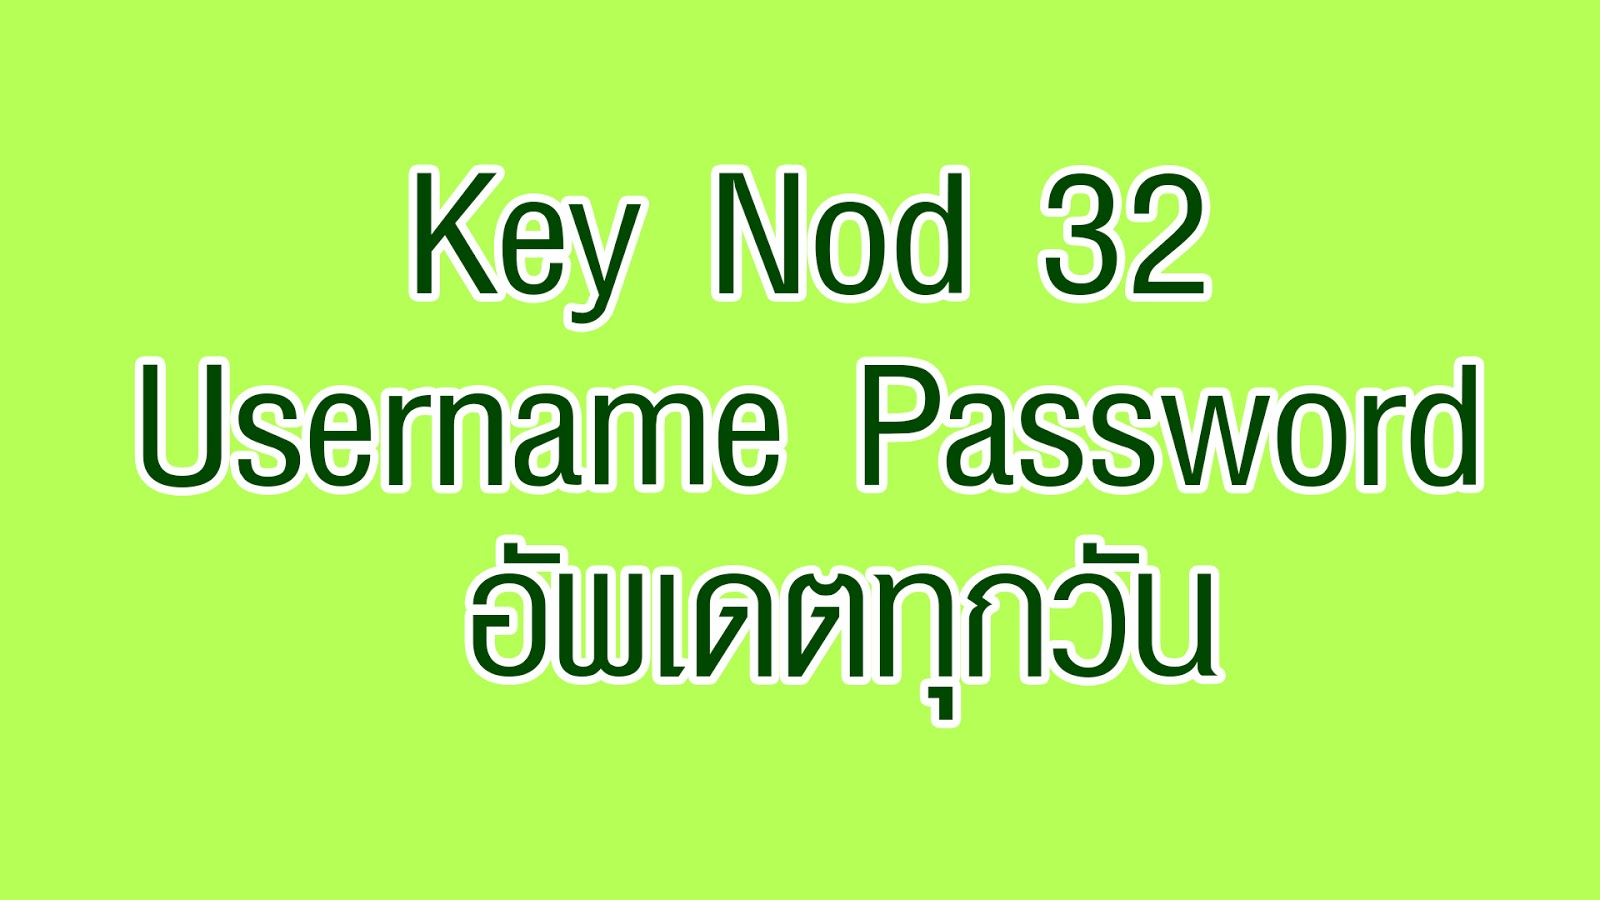 Nod user and password